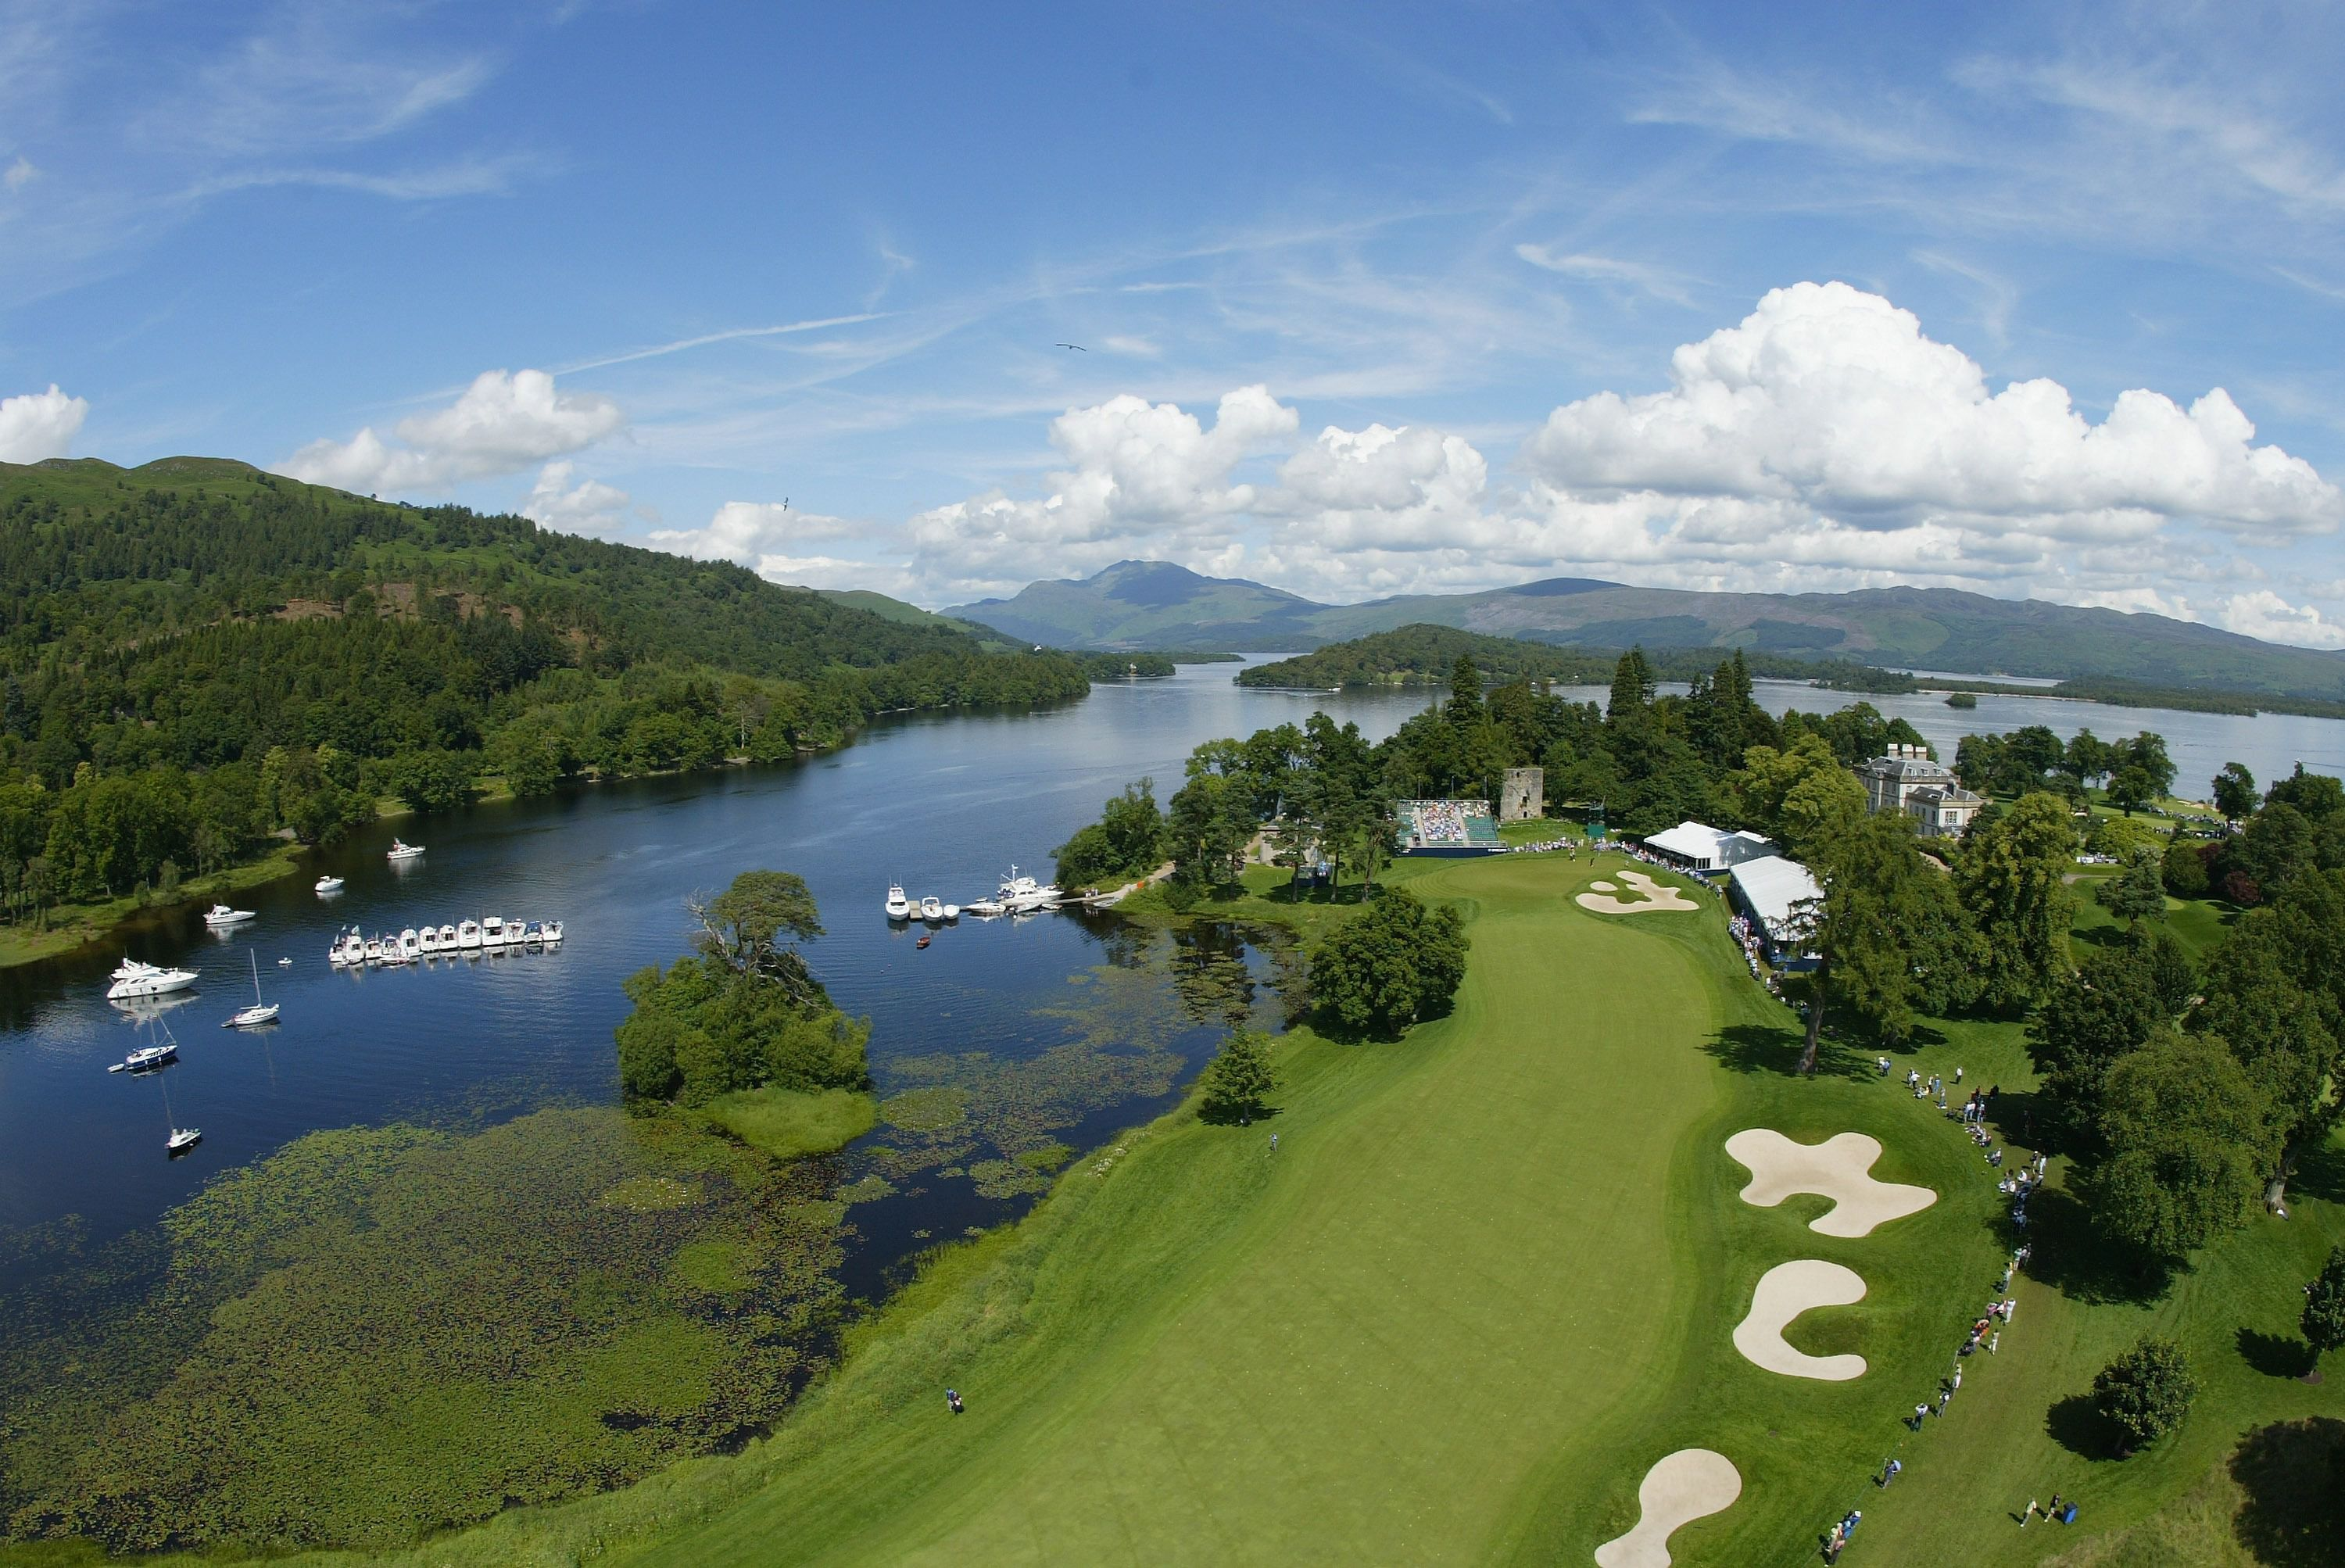 Loch lomond golf club cover picture